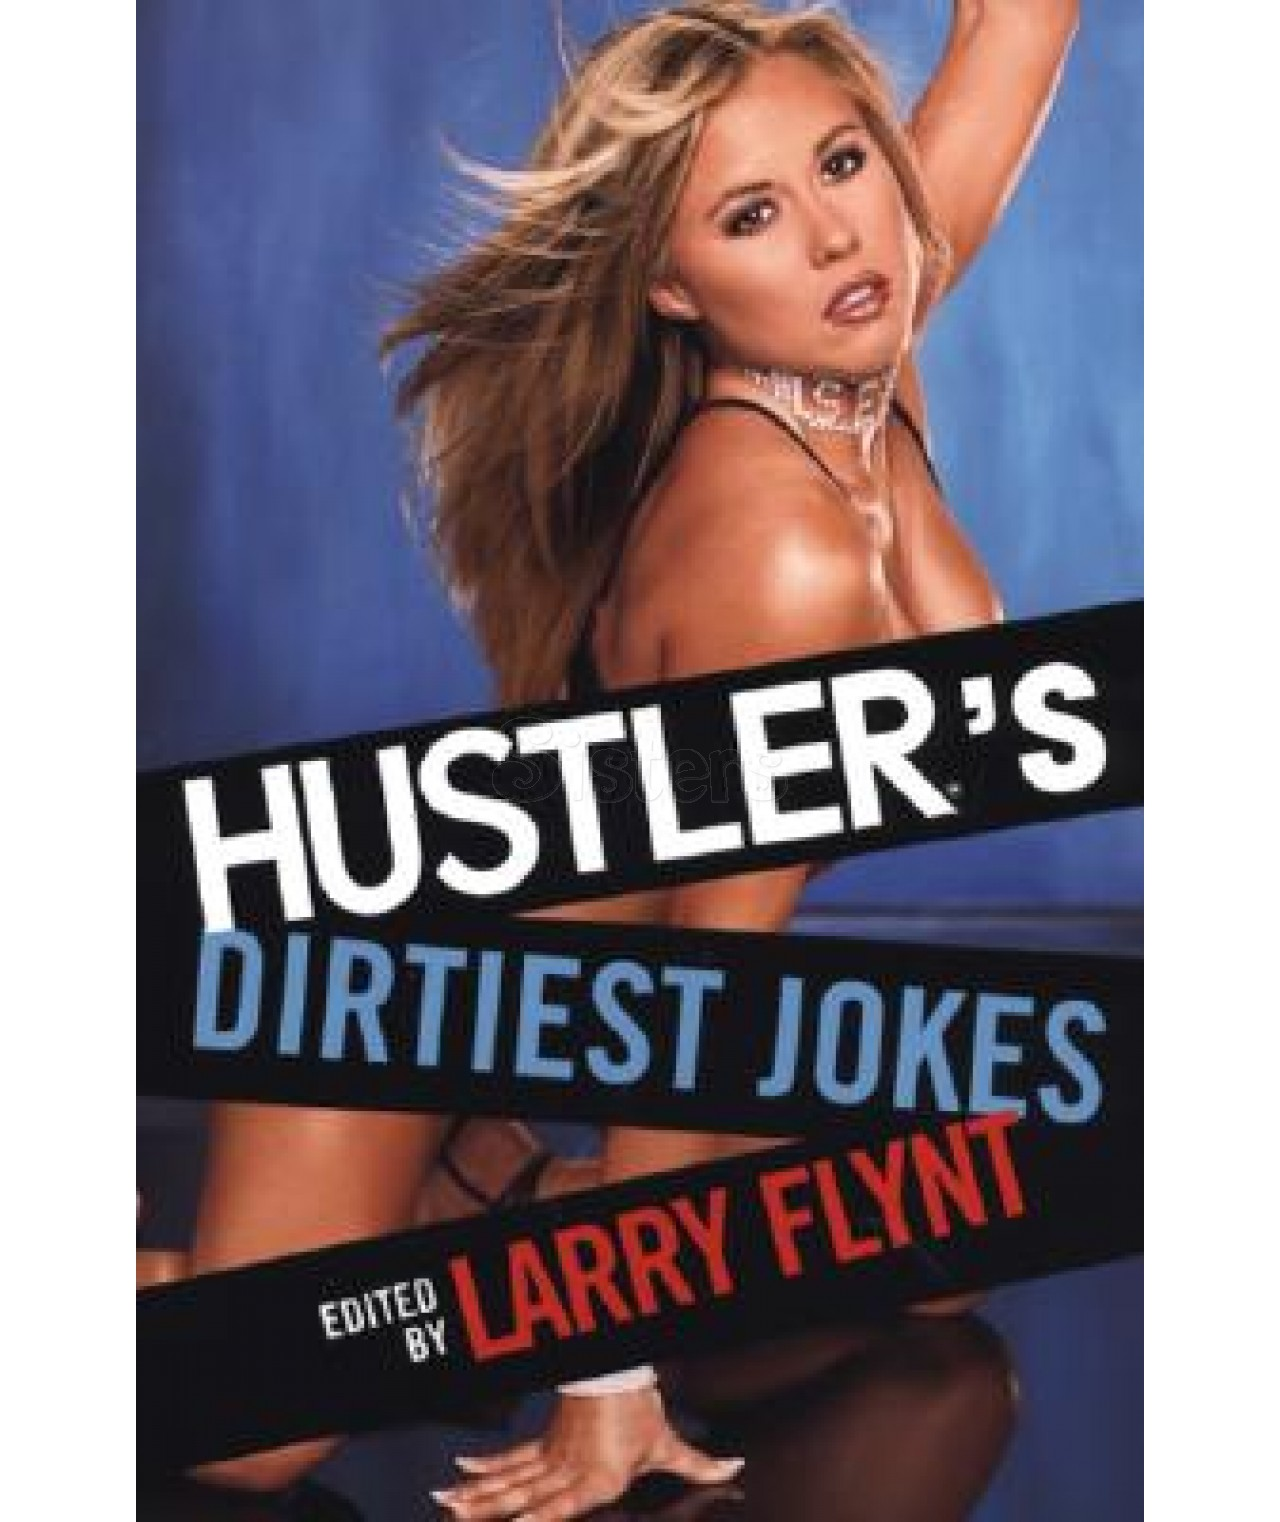 Hustler's dirtiest jokes